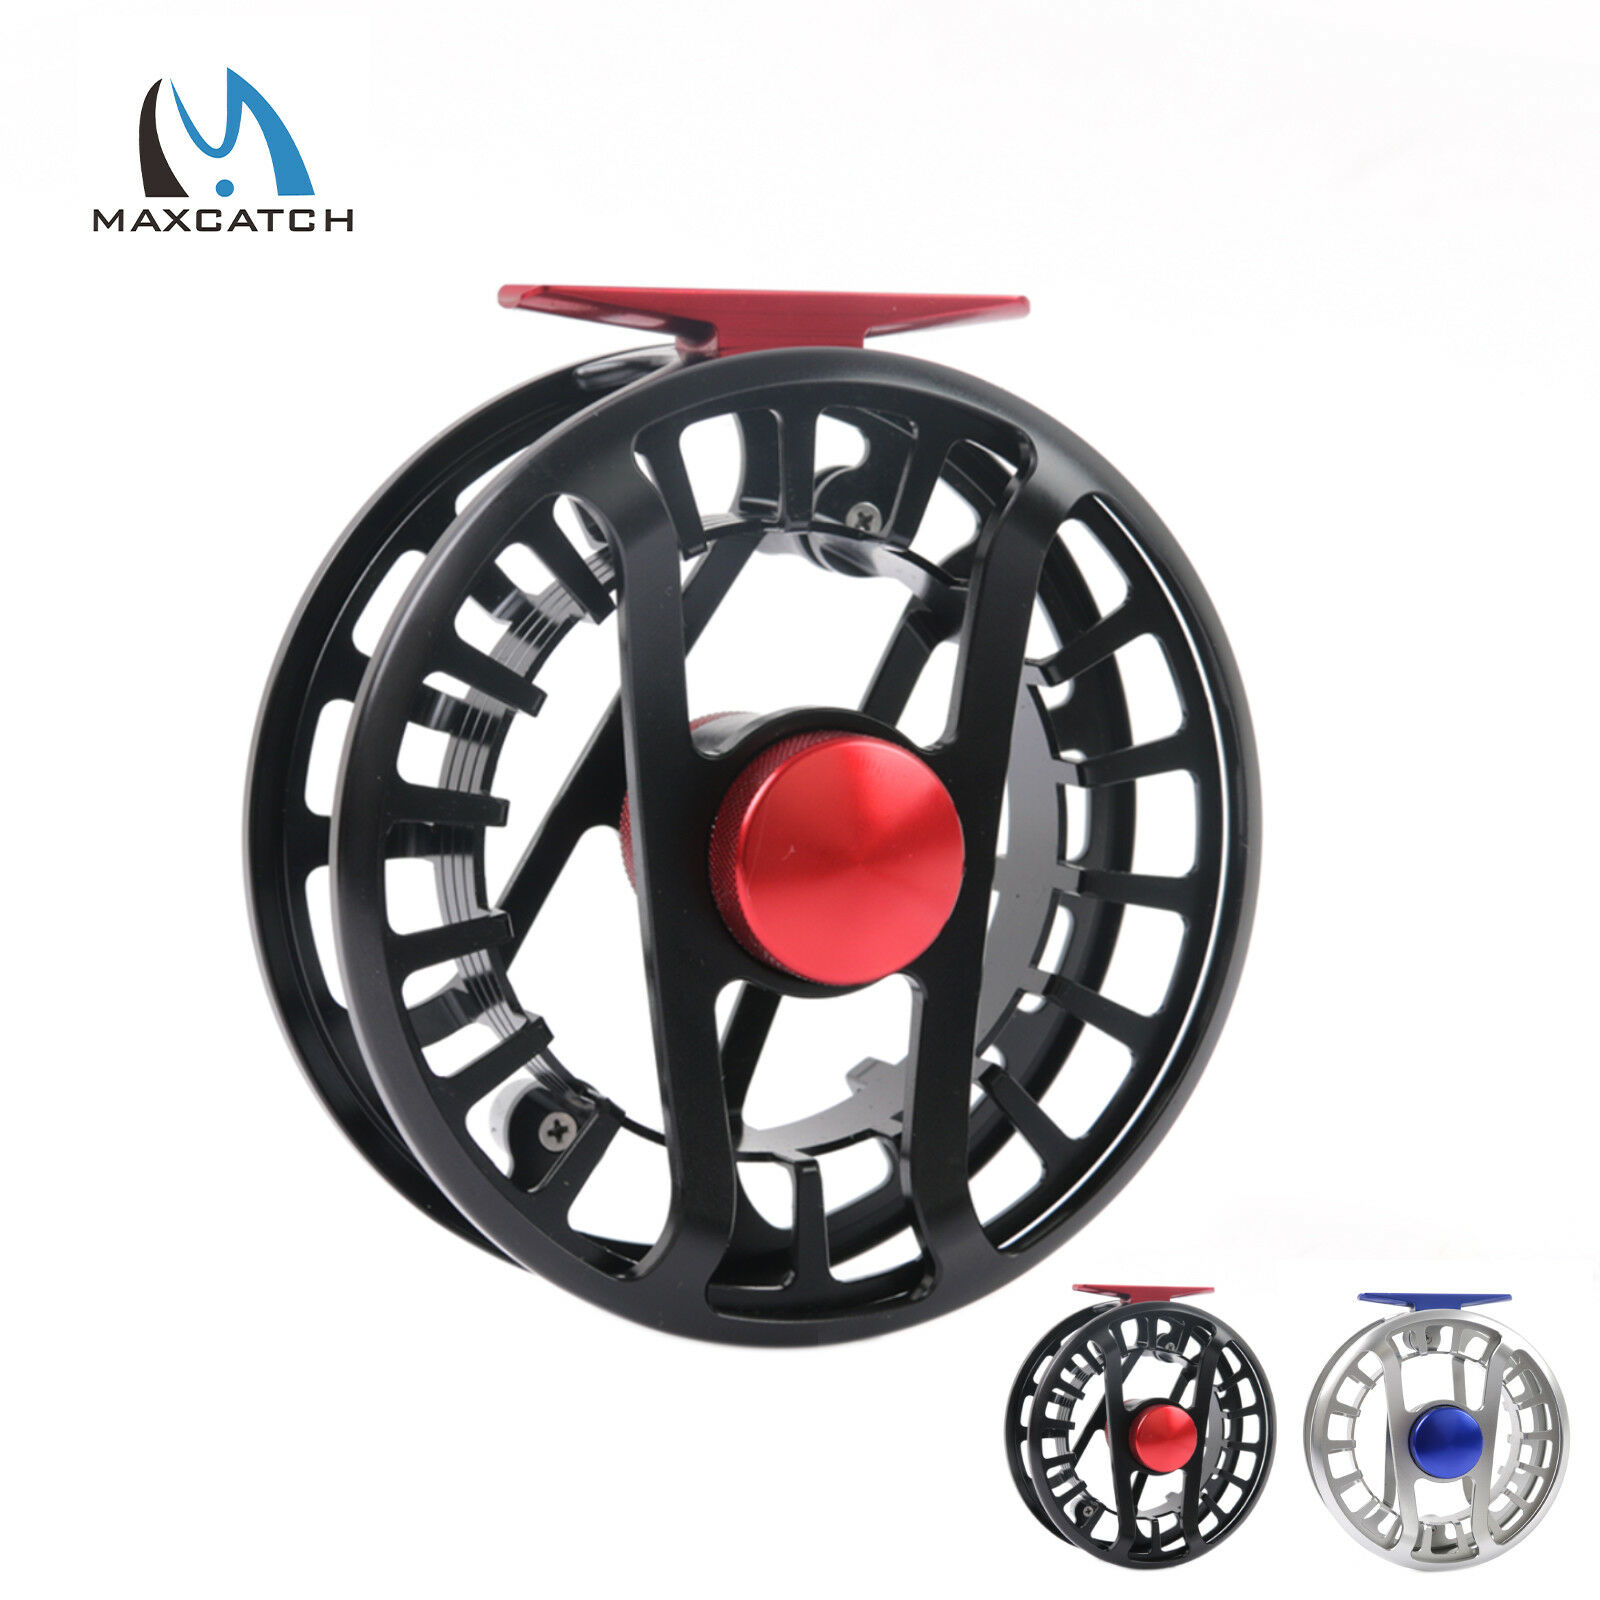 Maxcatch FLY REEL 5/6 11/13 7/9 9/11 11/13 5/6 WT saltwaterproof Large Arbor in alluminio fc0401